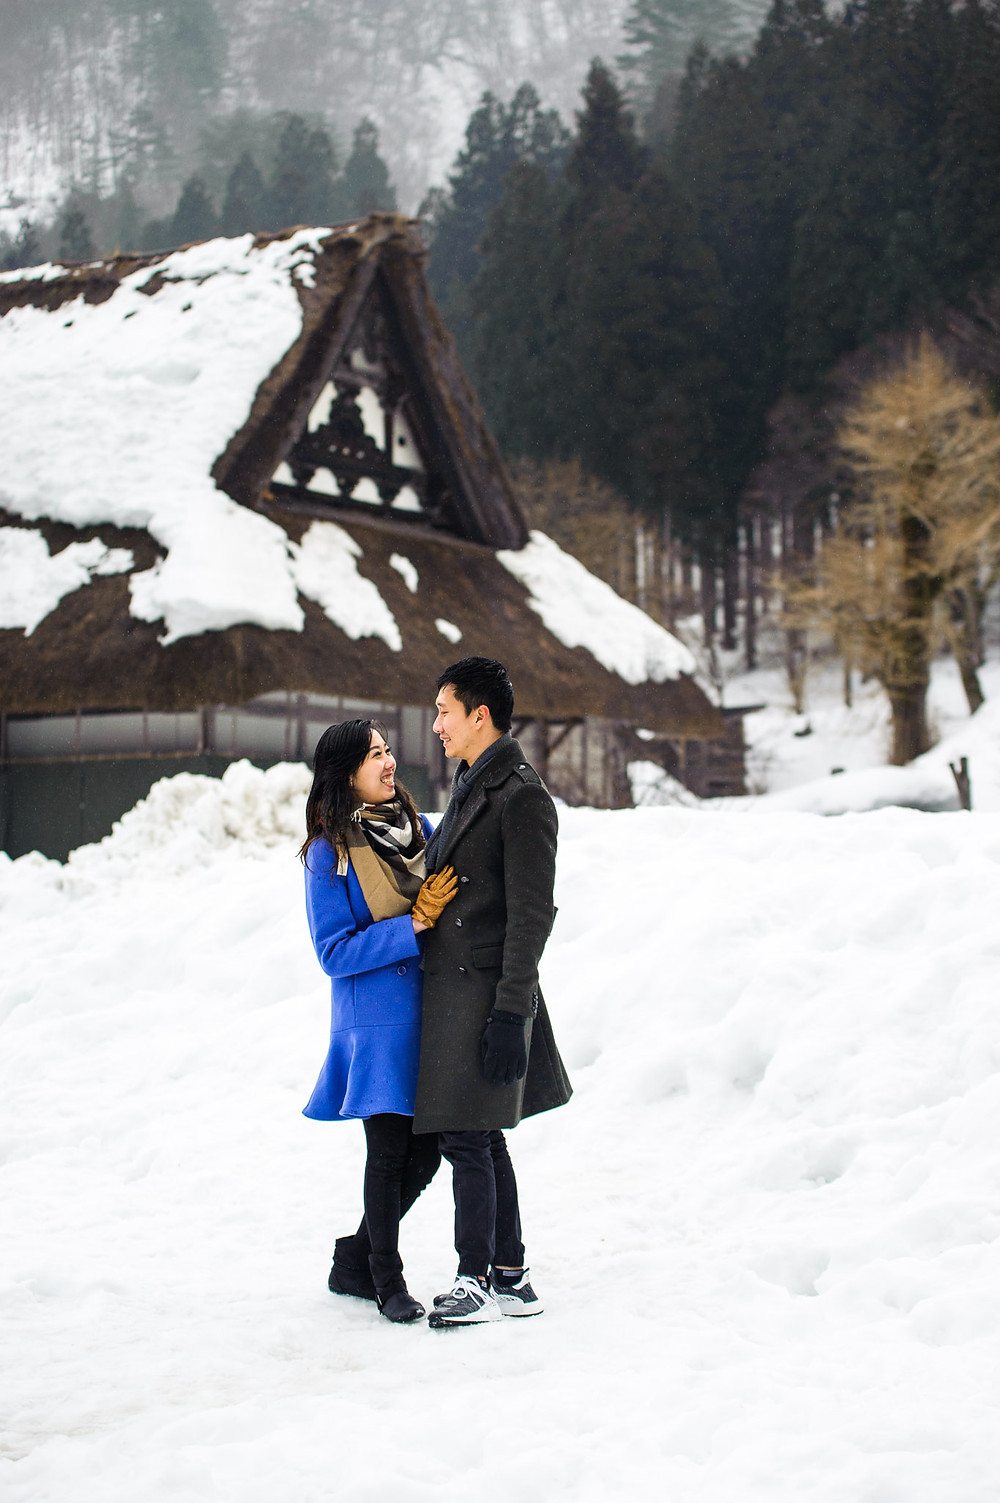 Mira and Sin in front of a snow covered house in Shirakawago